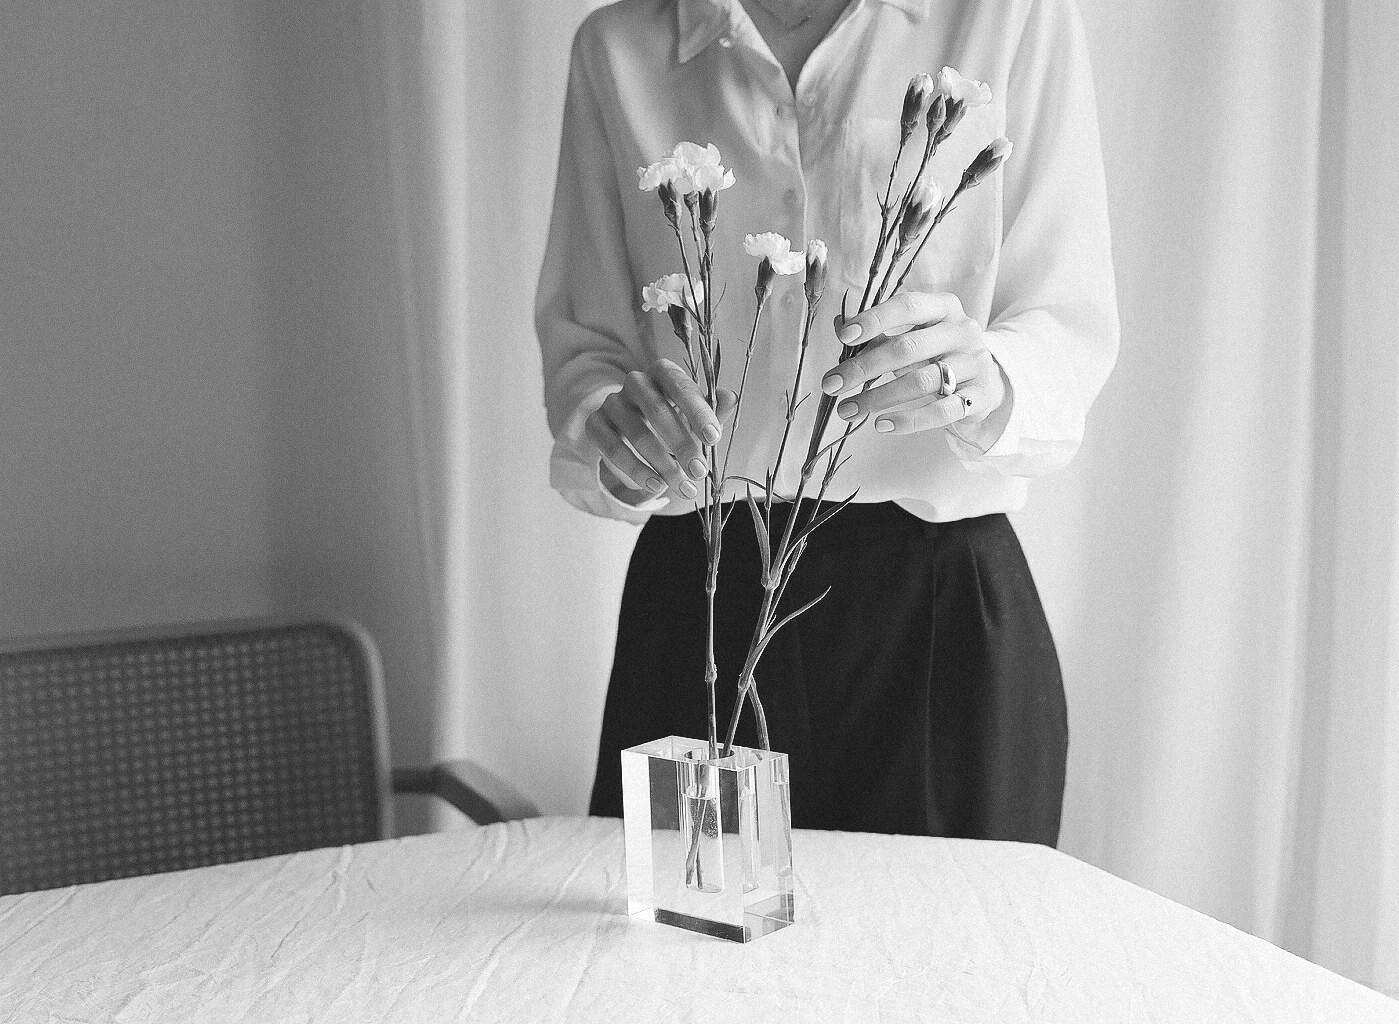 Decoration. When putting together a flower arrangement, consider the meaning of the florals you choose. For example, white carnations are said to represent luck and pure love.